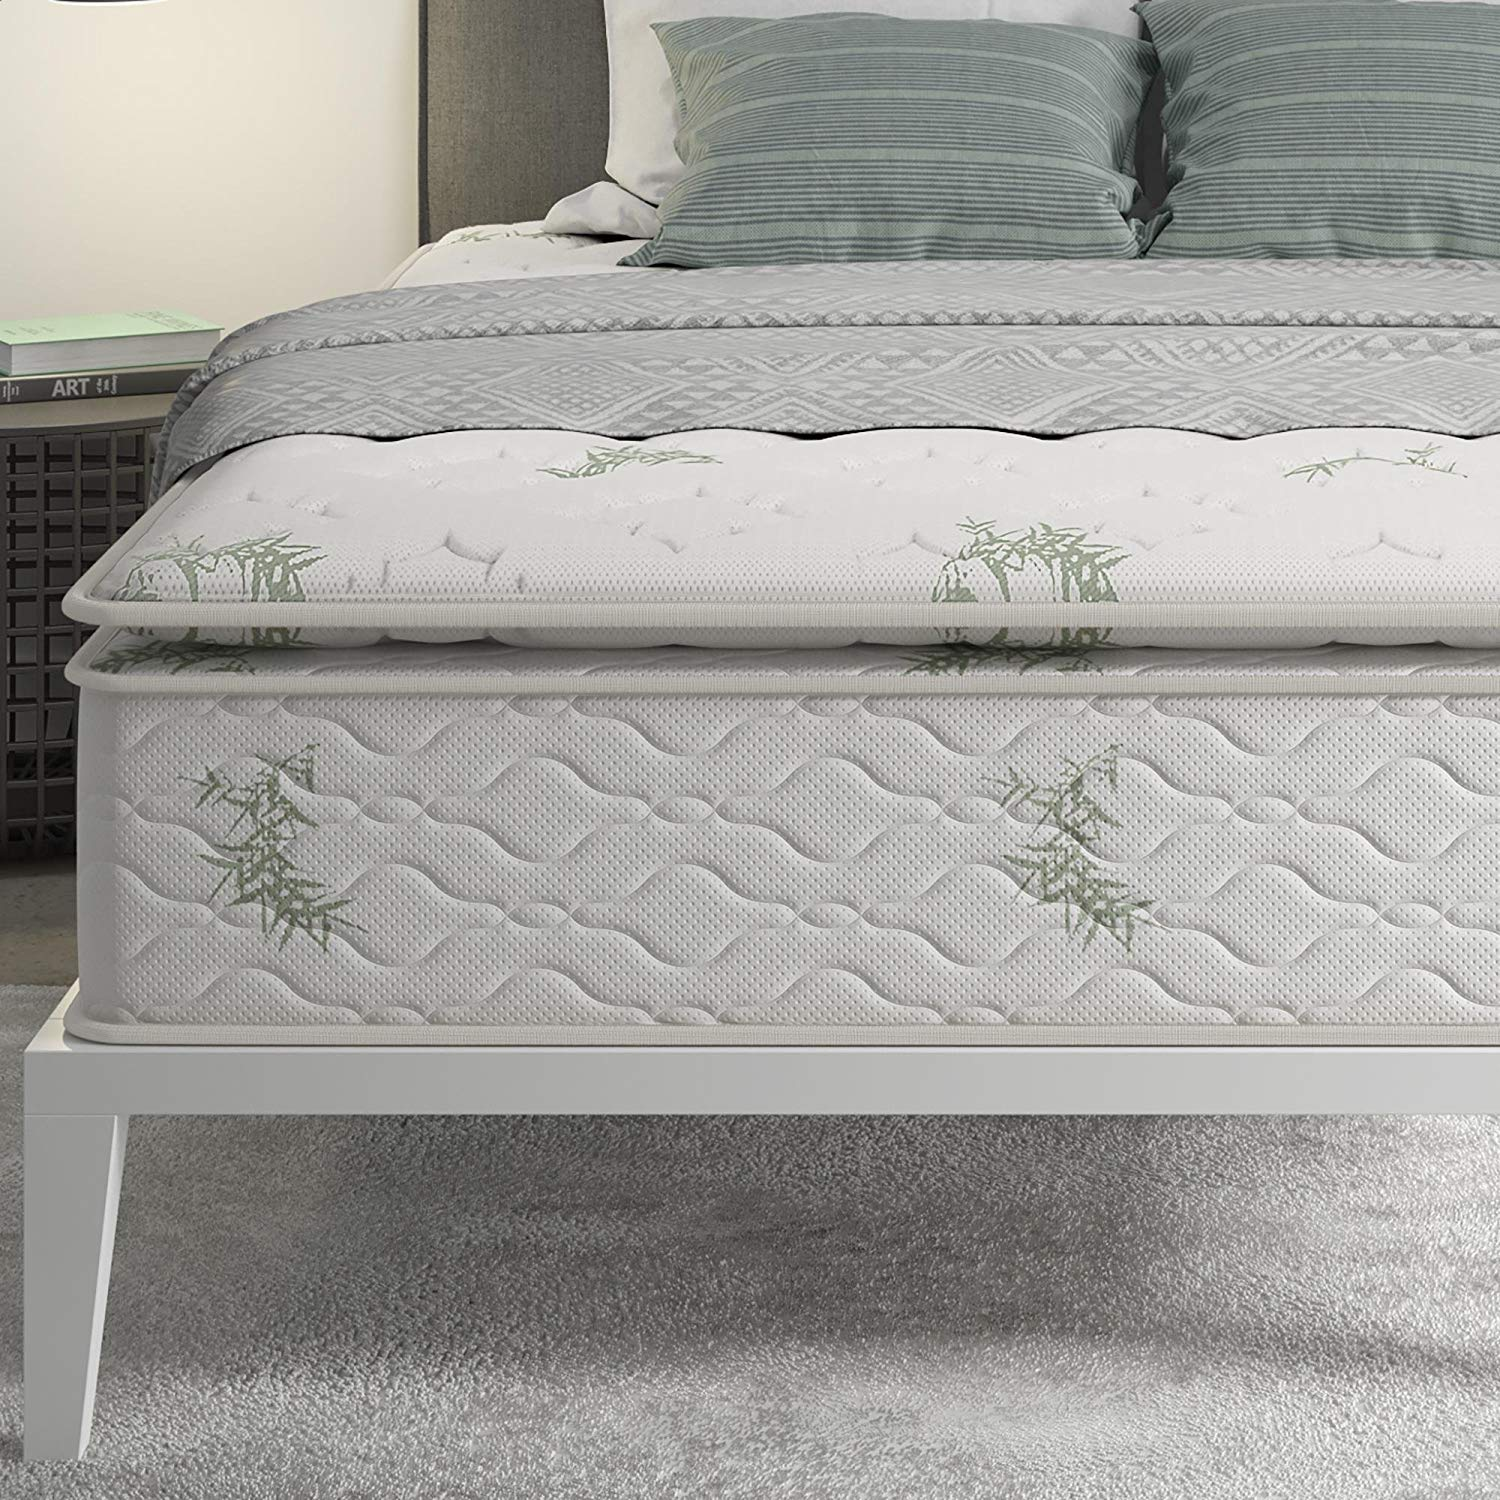 Signature Sleep 13 inch Pillow-Top Independently Encased Coil Mattress for Added Comfort, Full